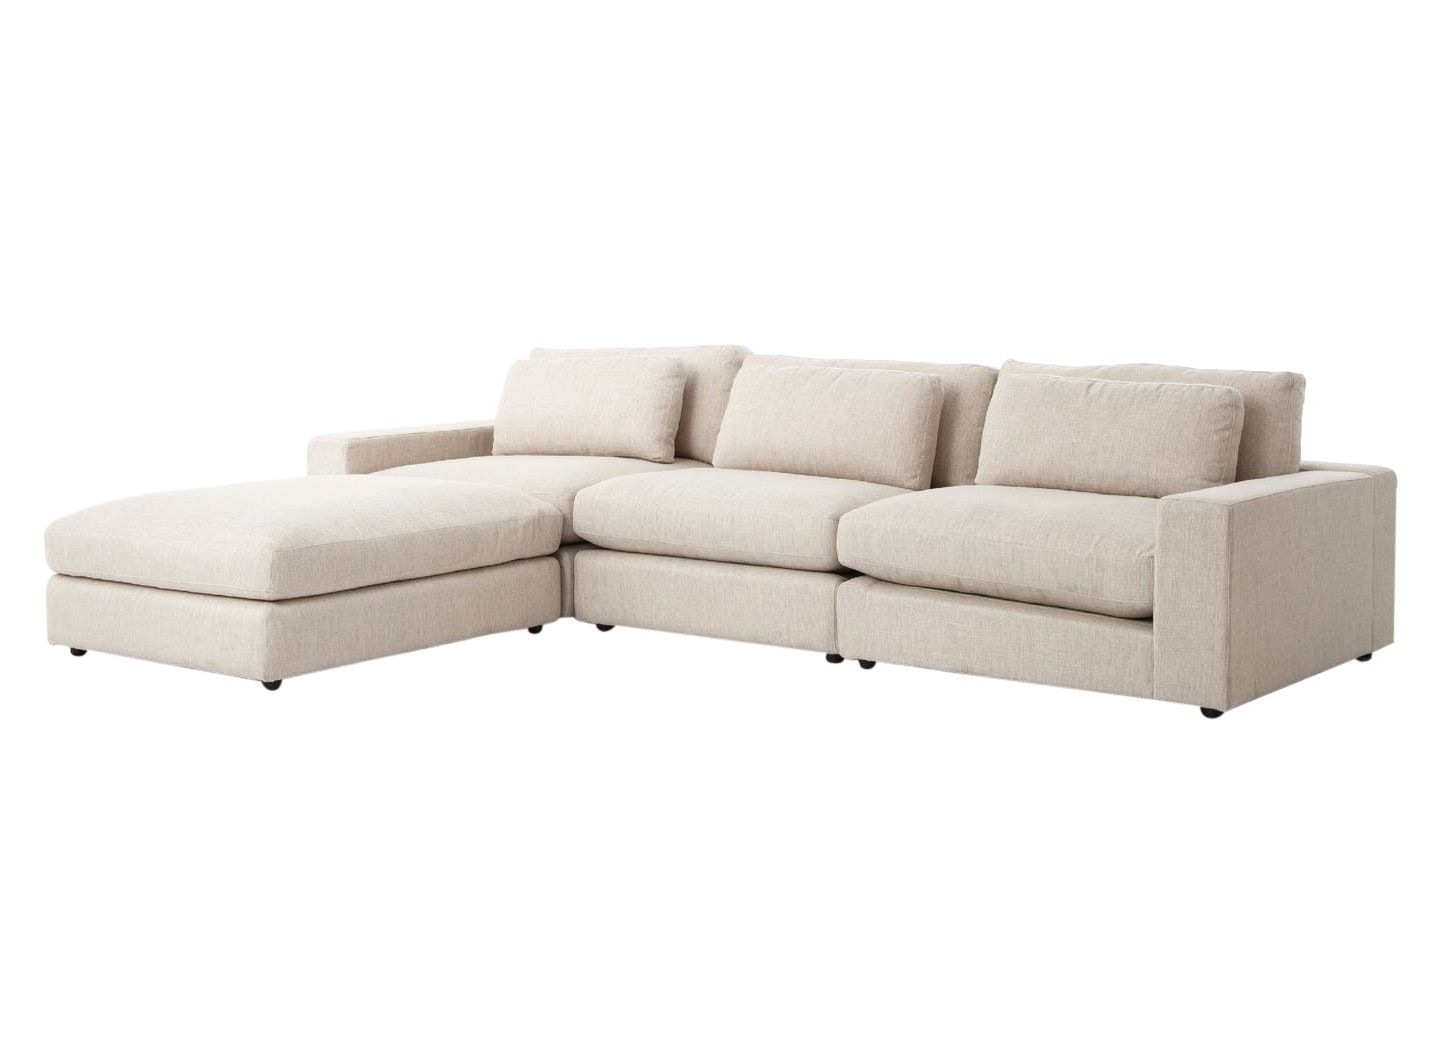 Low Profile Sectional Sofa By English Country Home Sectional